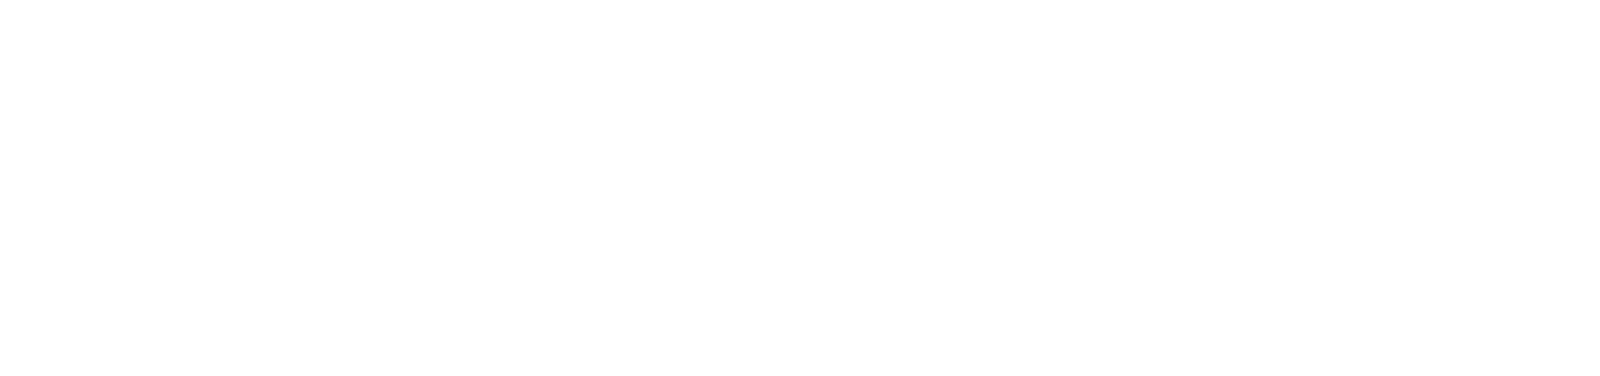 Center Centre UIE Logo